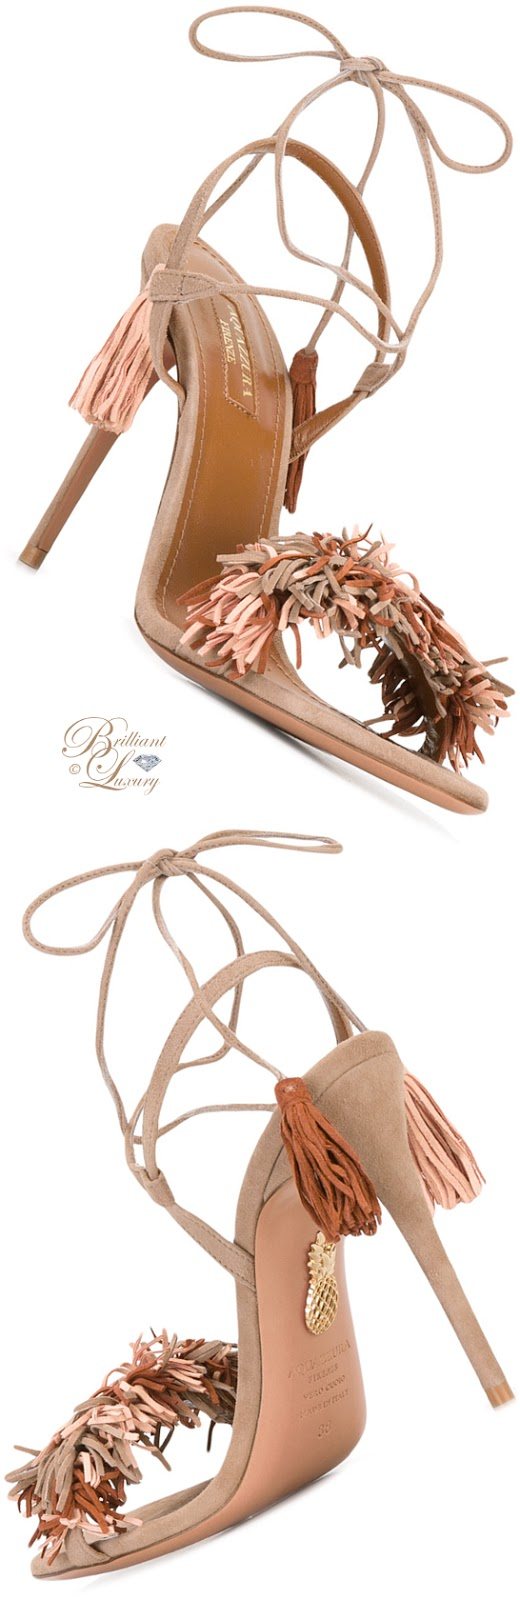 Brilliant Luxury ♦ Aquazzura Pom Pom Sandals